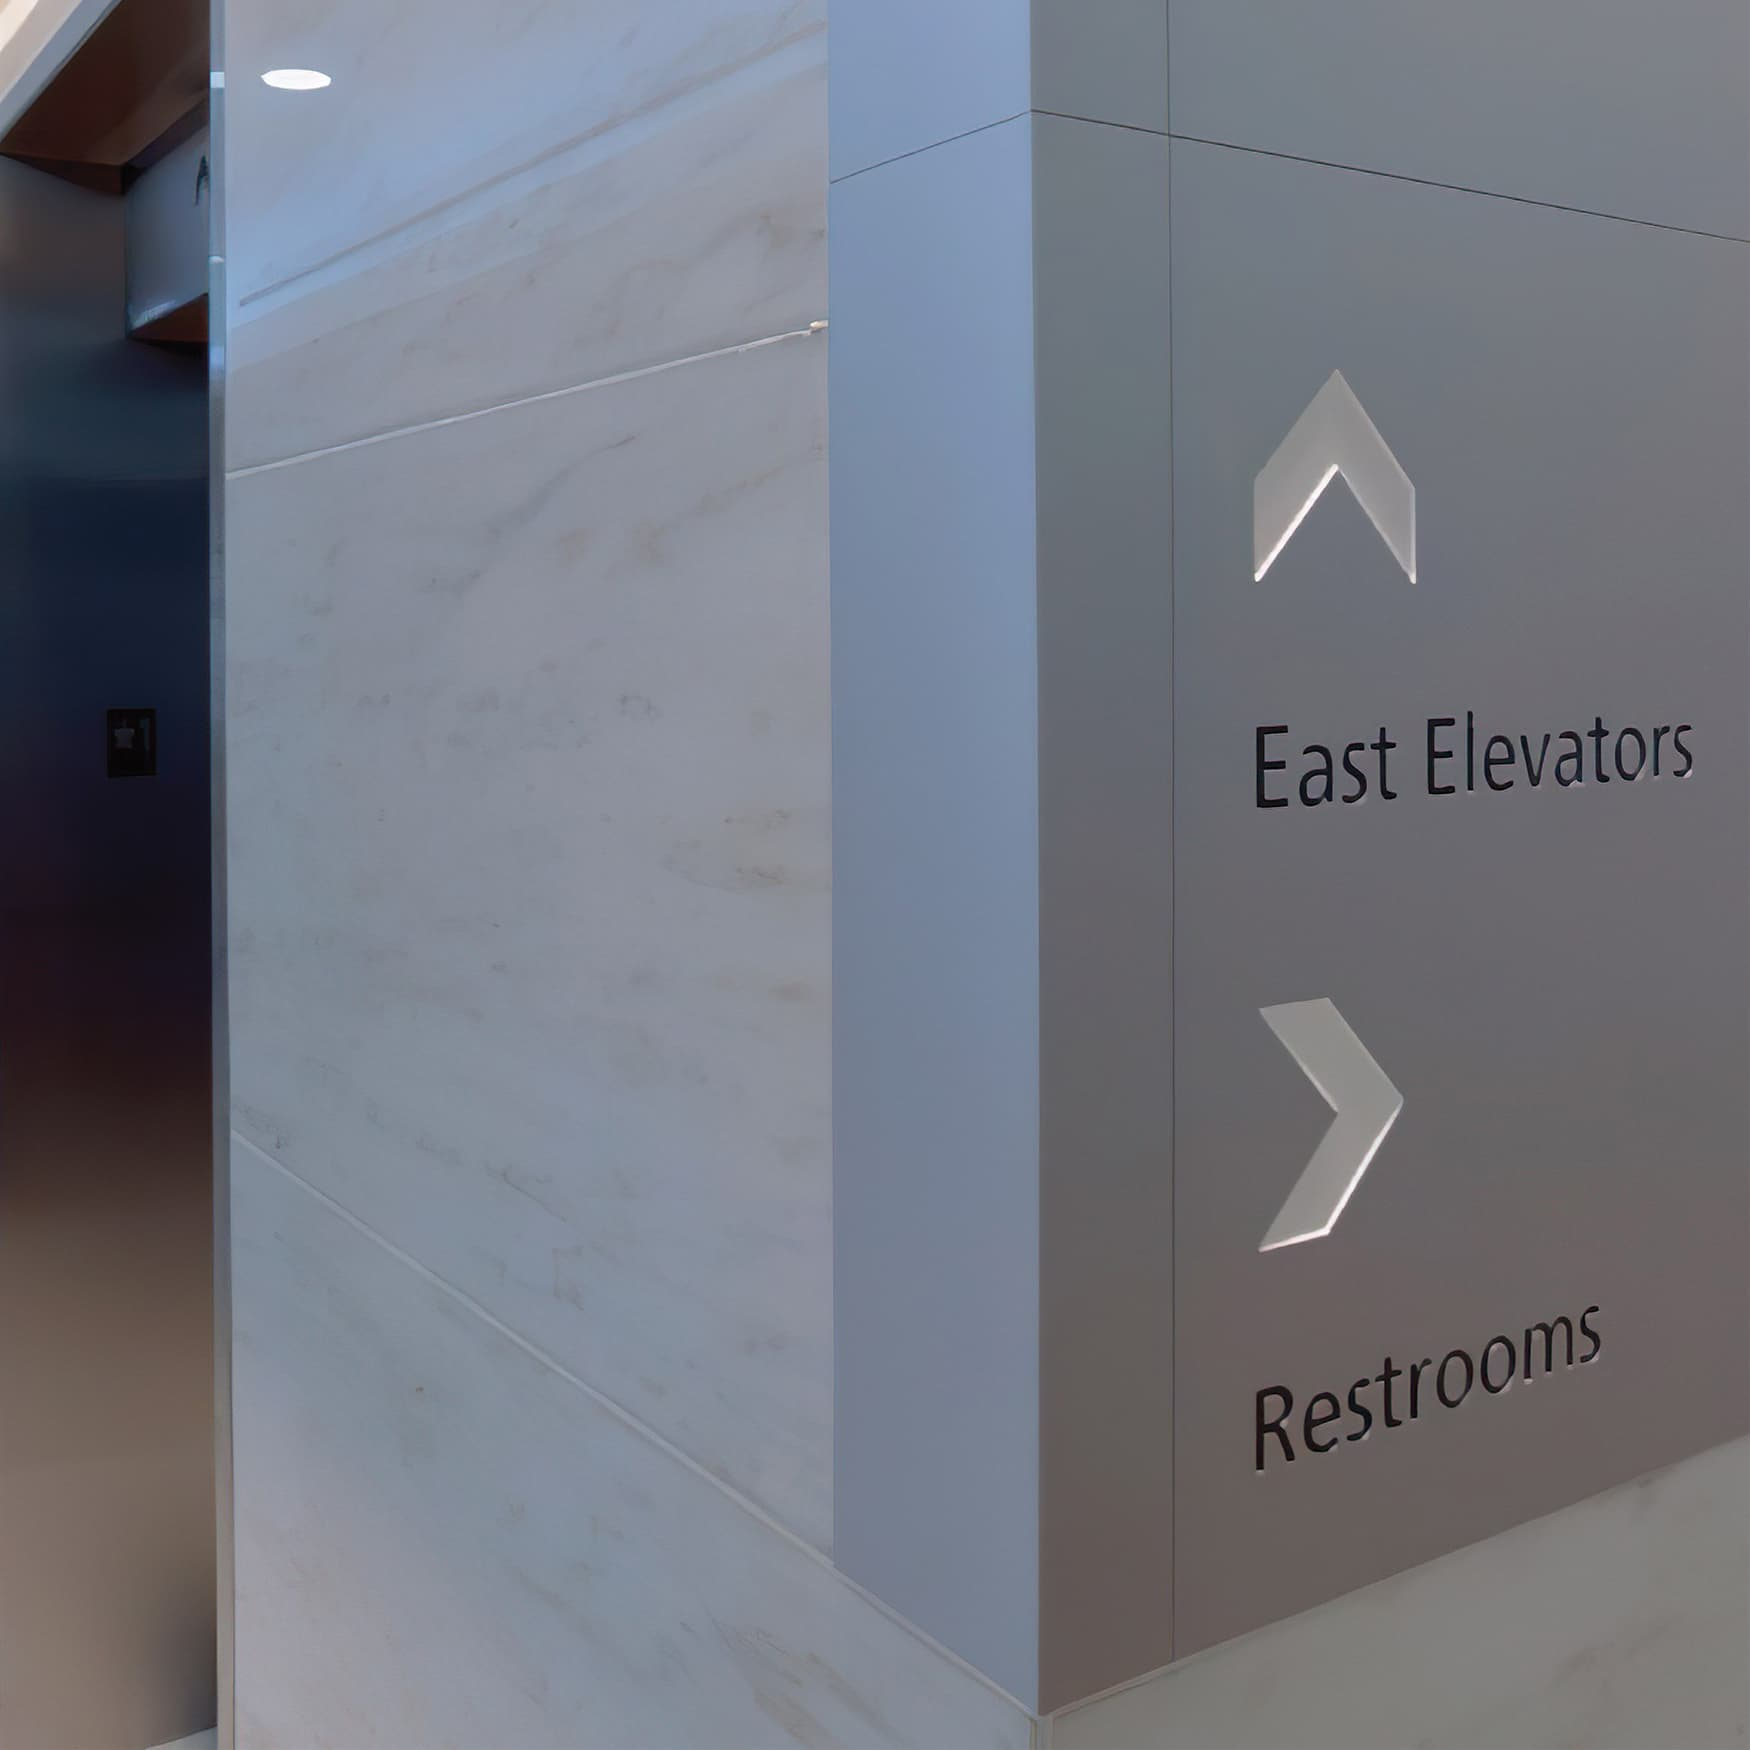 A photo of a wall mounted directional plaque located near an elevator.